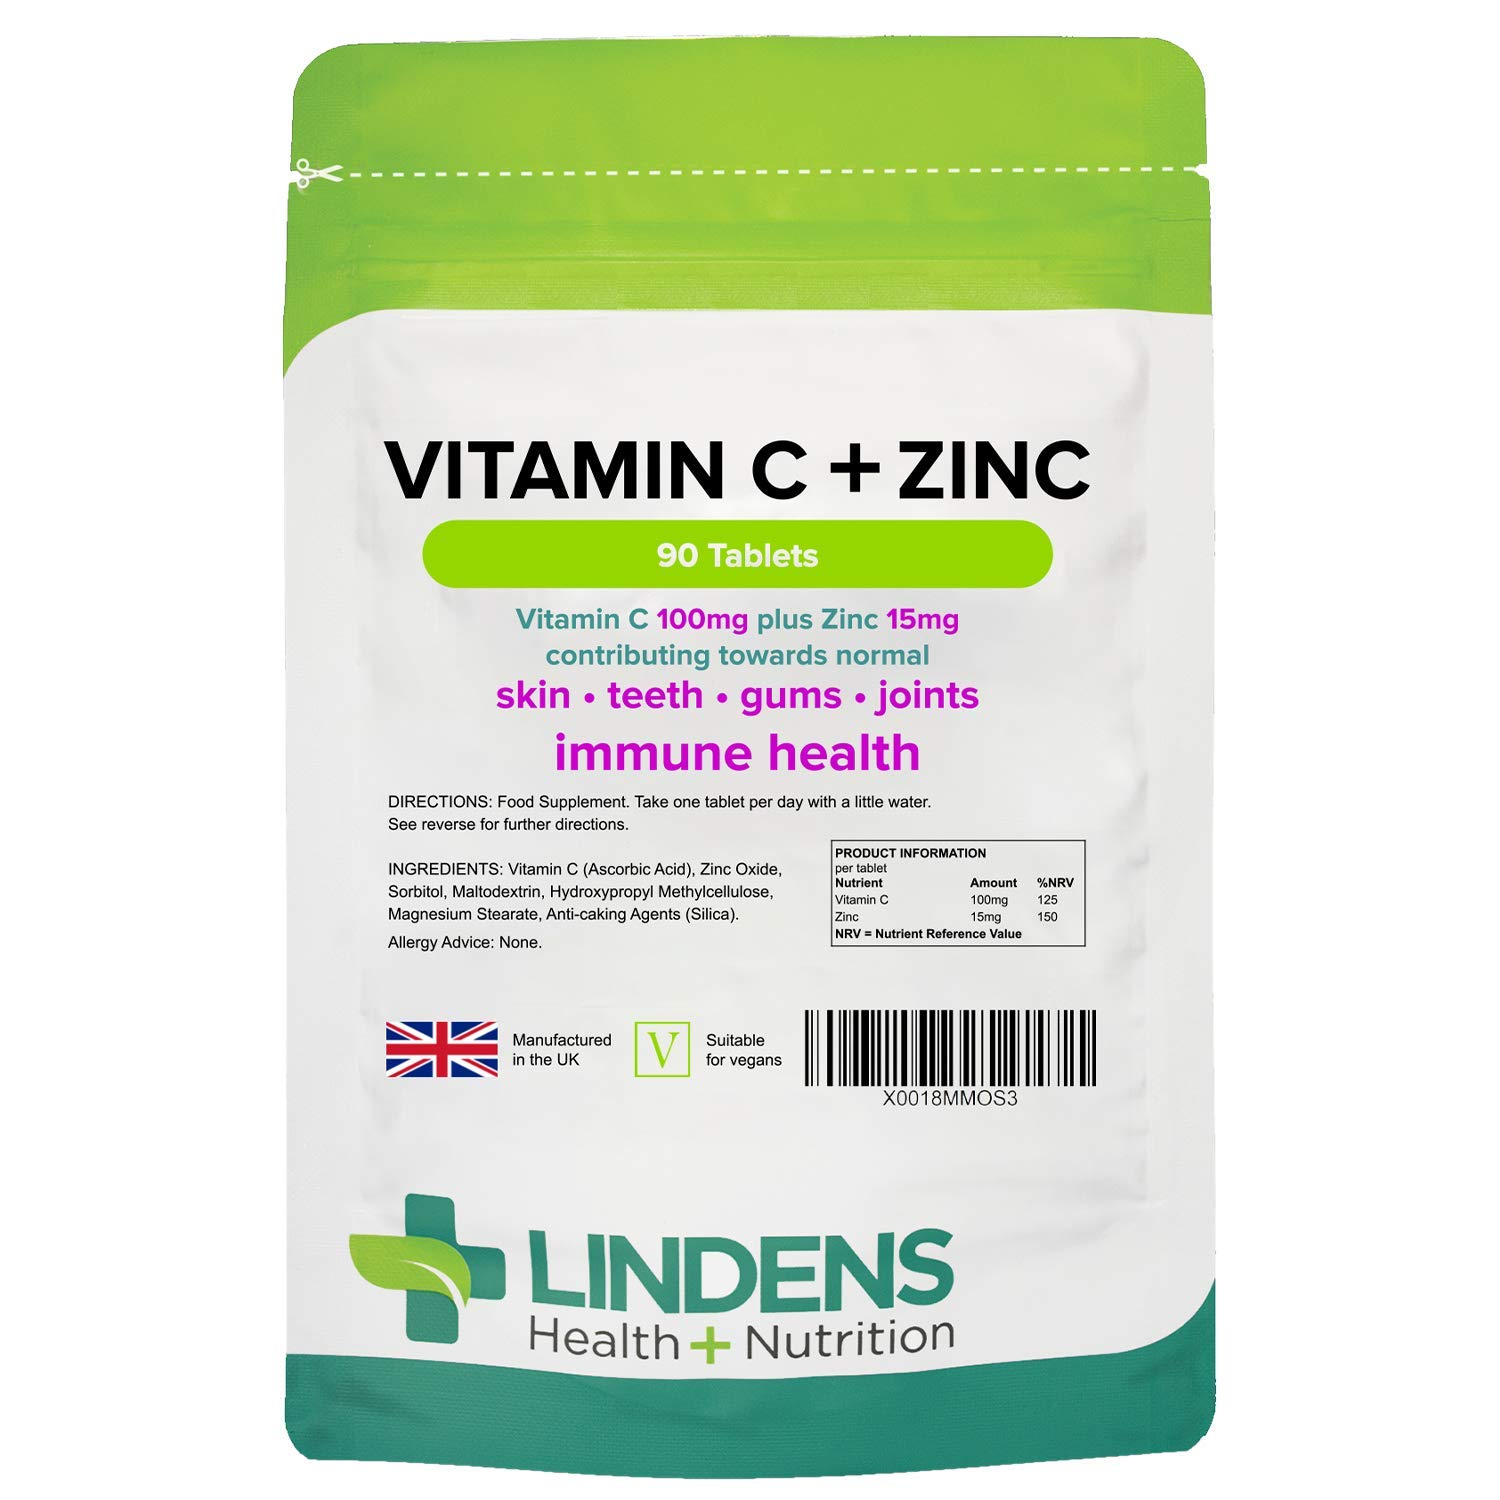 Vitamin C + Zinc - 90 Tablets - Contributes to Normal Skin, Teeth, Gums, Immune System & Joints - 3 Months' Supply - UK Manufacturer, Letterbox Friendly